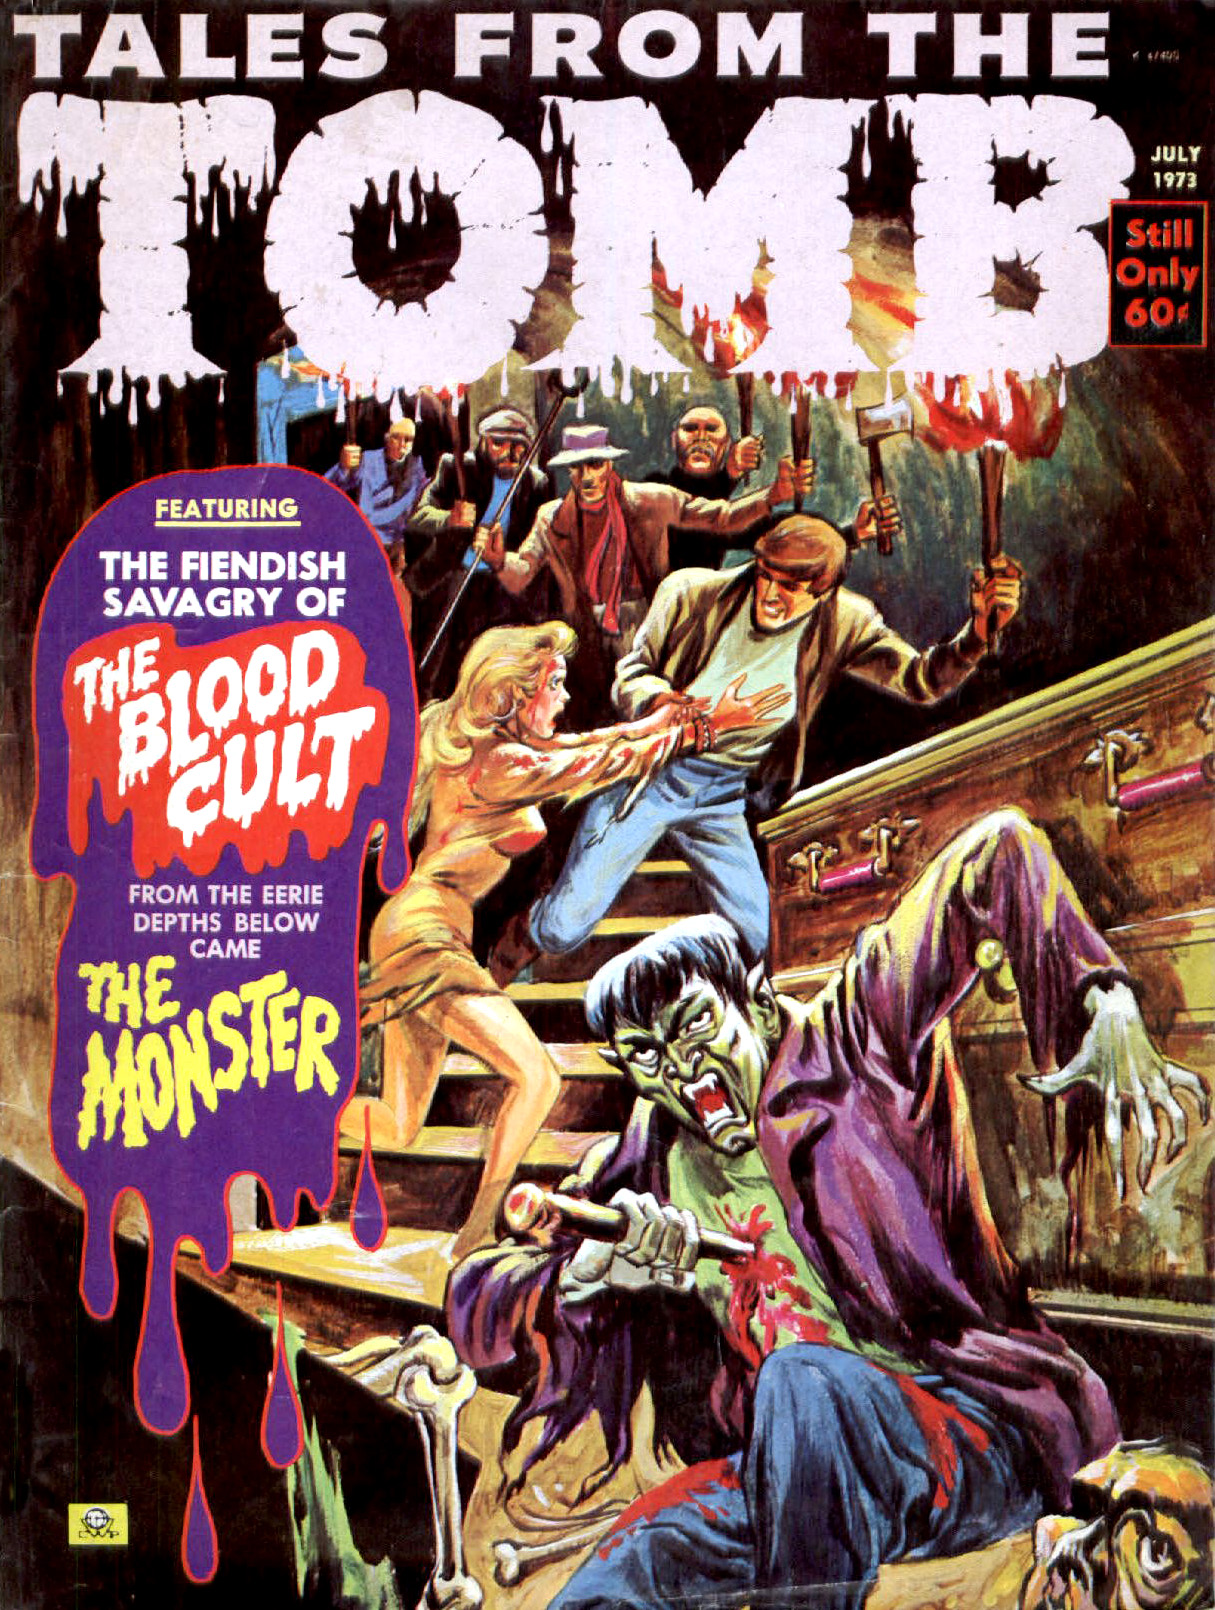 Tales from the Tomb - Vol. 5 #4 (Eerie Publications, 1973)